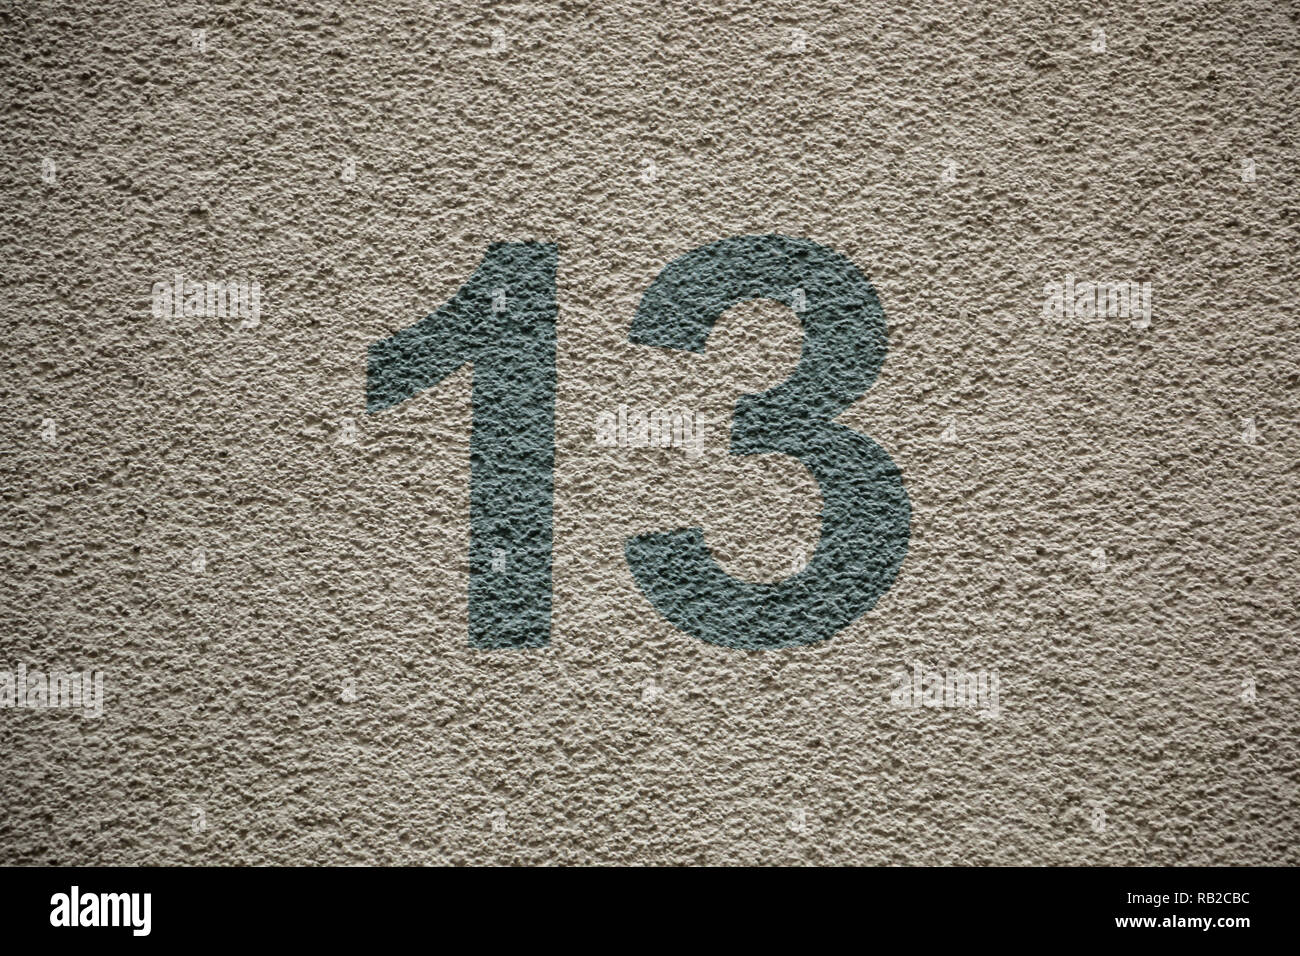 Number 13 of the house with green letters Stock Photo